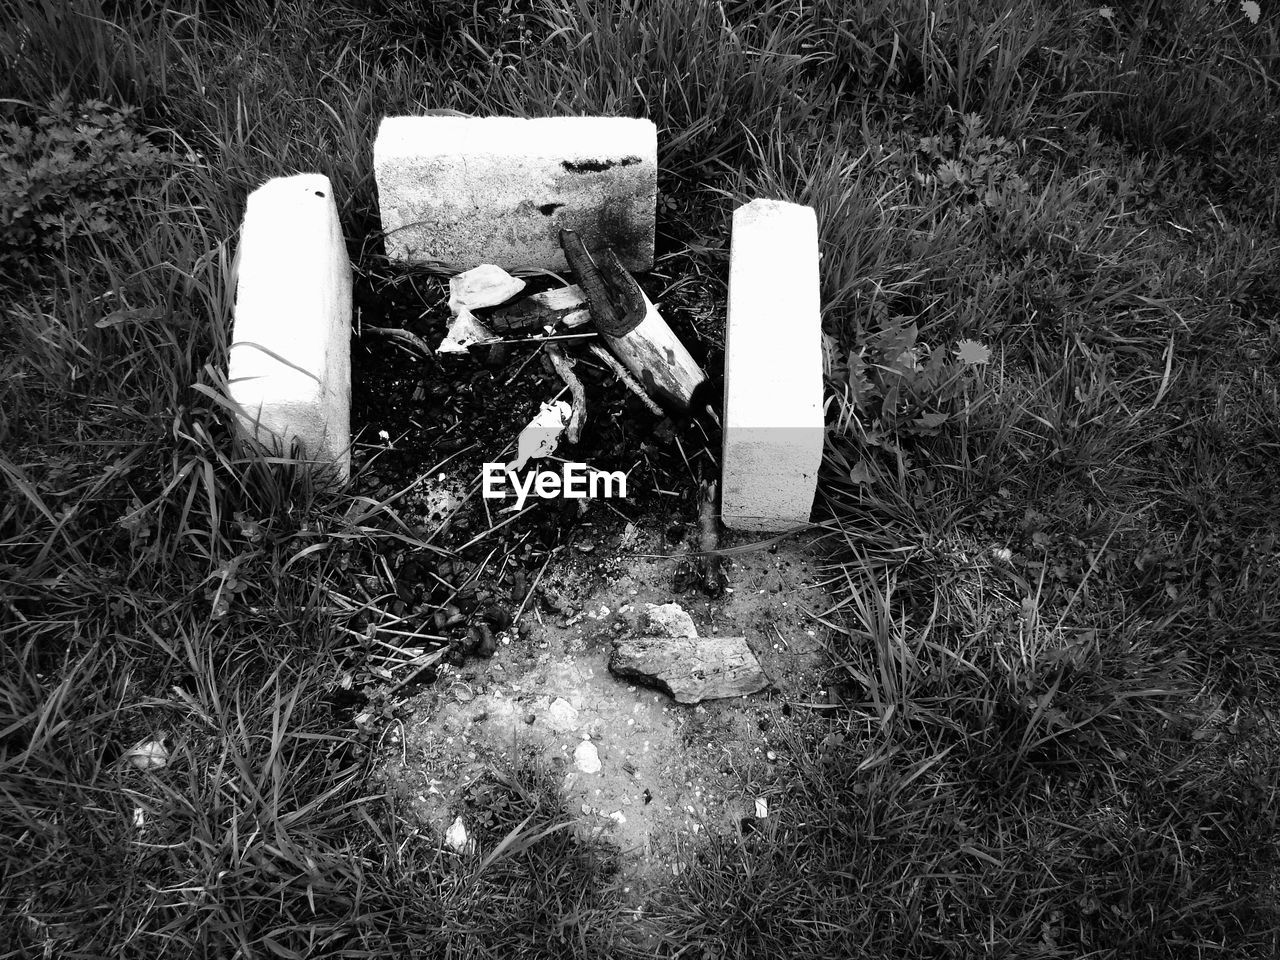 grass, land, no people, nature, field, plant, day, abandoned, high angle view, outdoors, grave, obsolete, cemetery, damaged, sadness, close-up, growth, environmental issues, religion, pollution